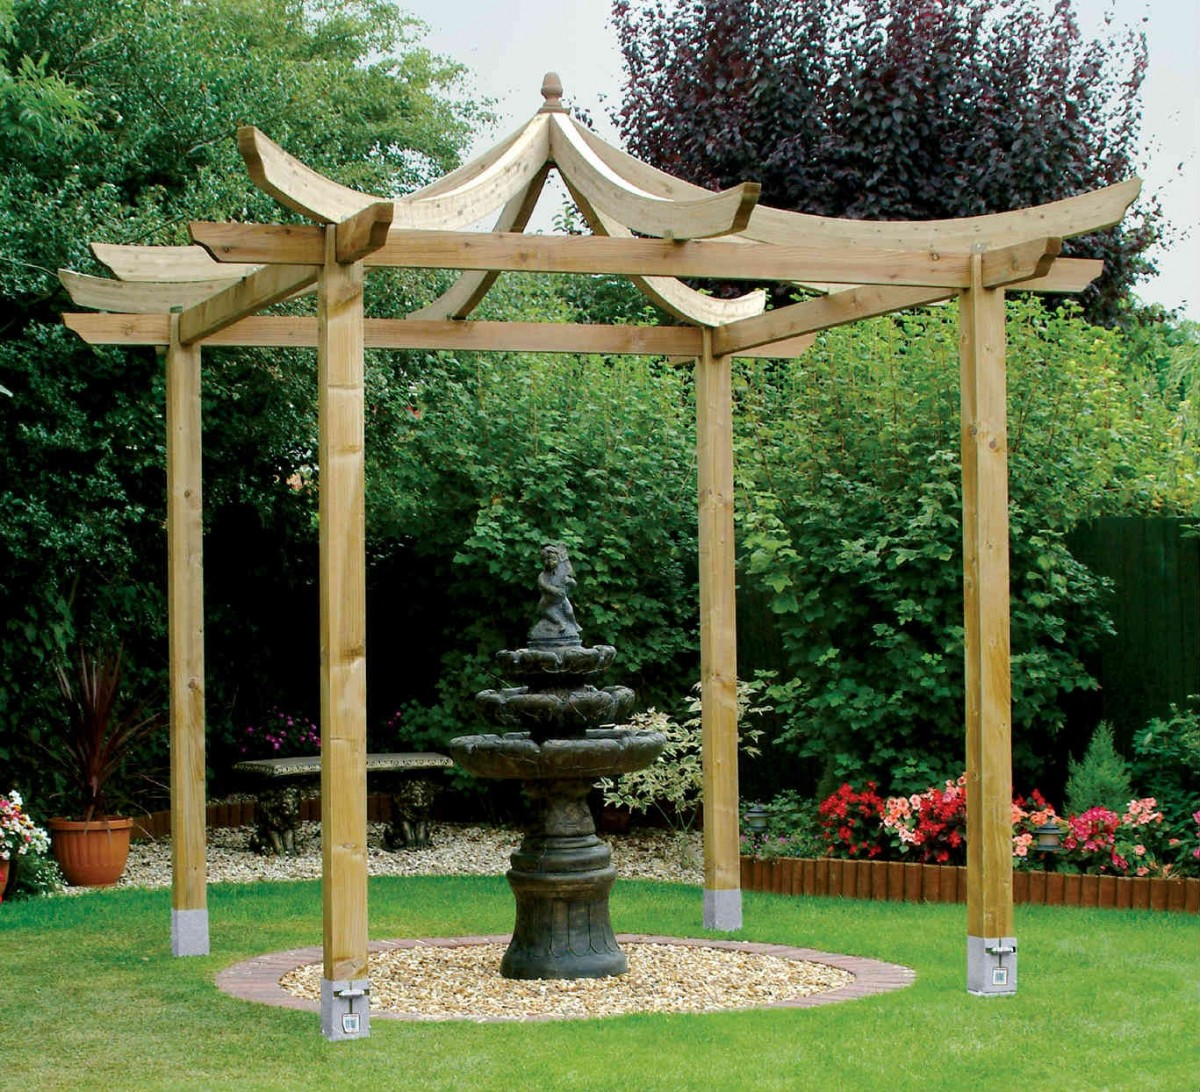 cream pergola plans with mini water fountain on center for yard decor ideas